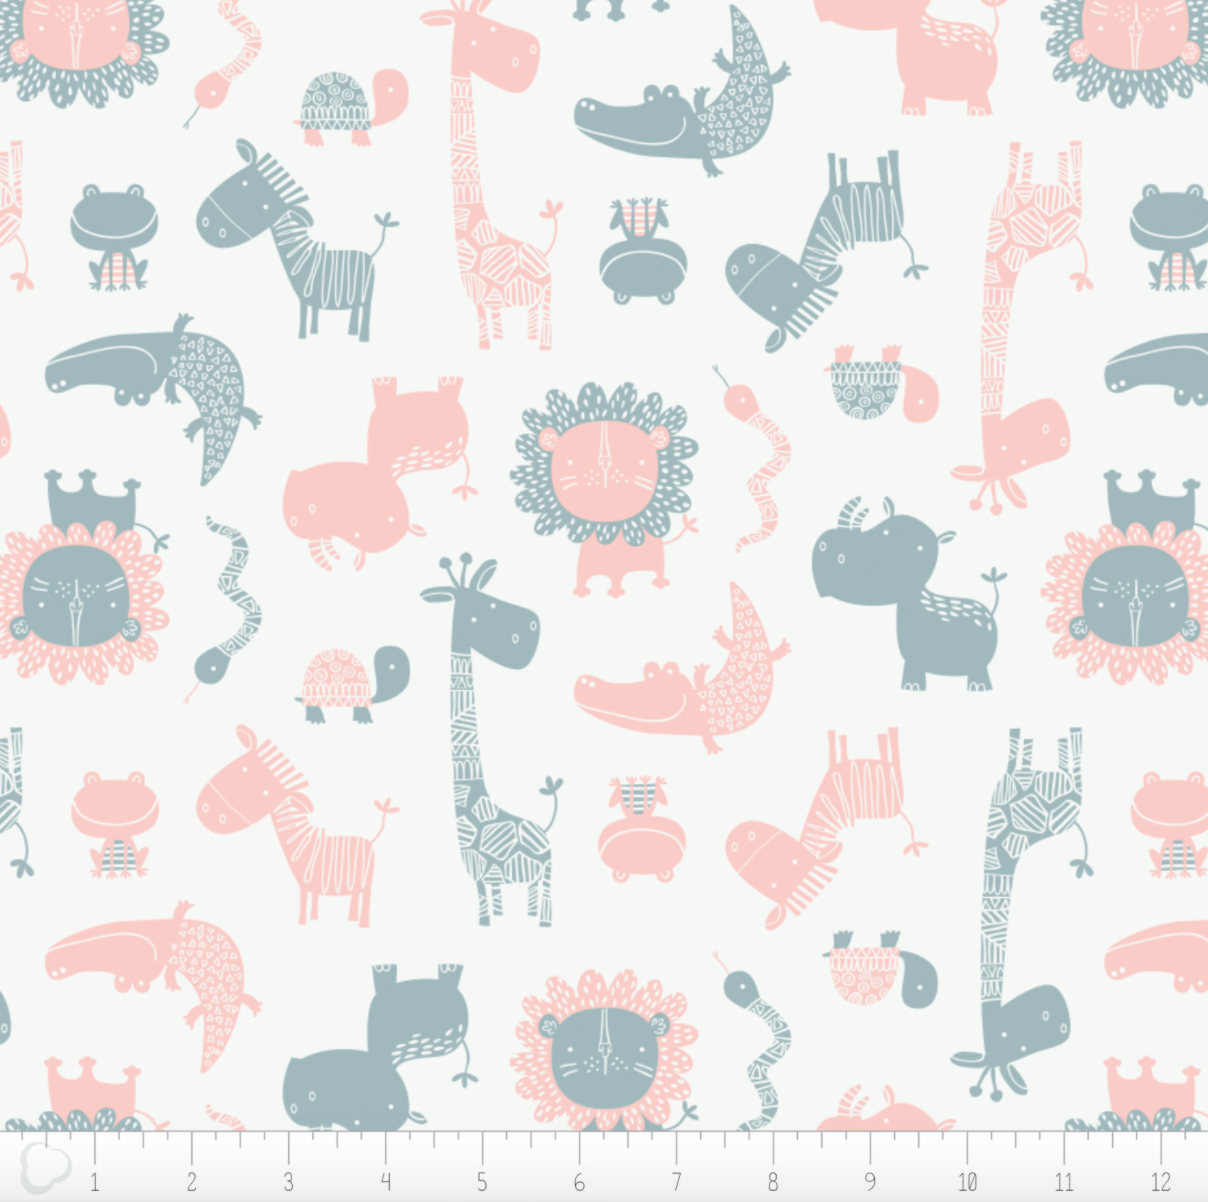 Jungle Friends in Pink from the Wild One fabric collection by Andrea Turk for Camelot Fabrics